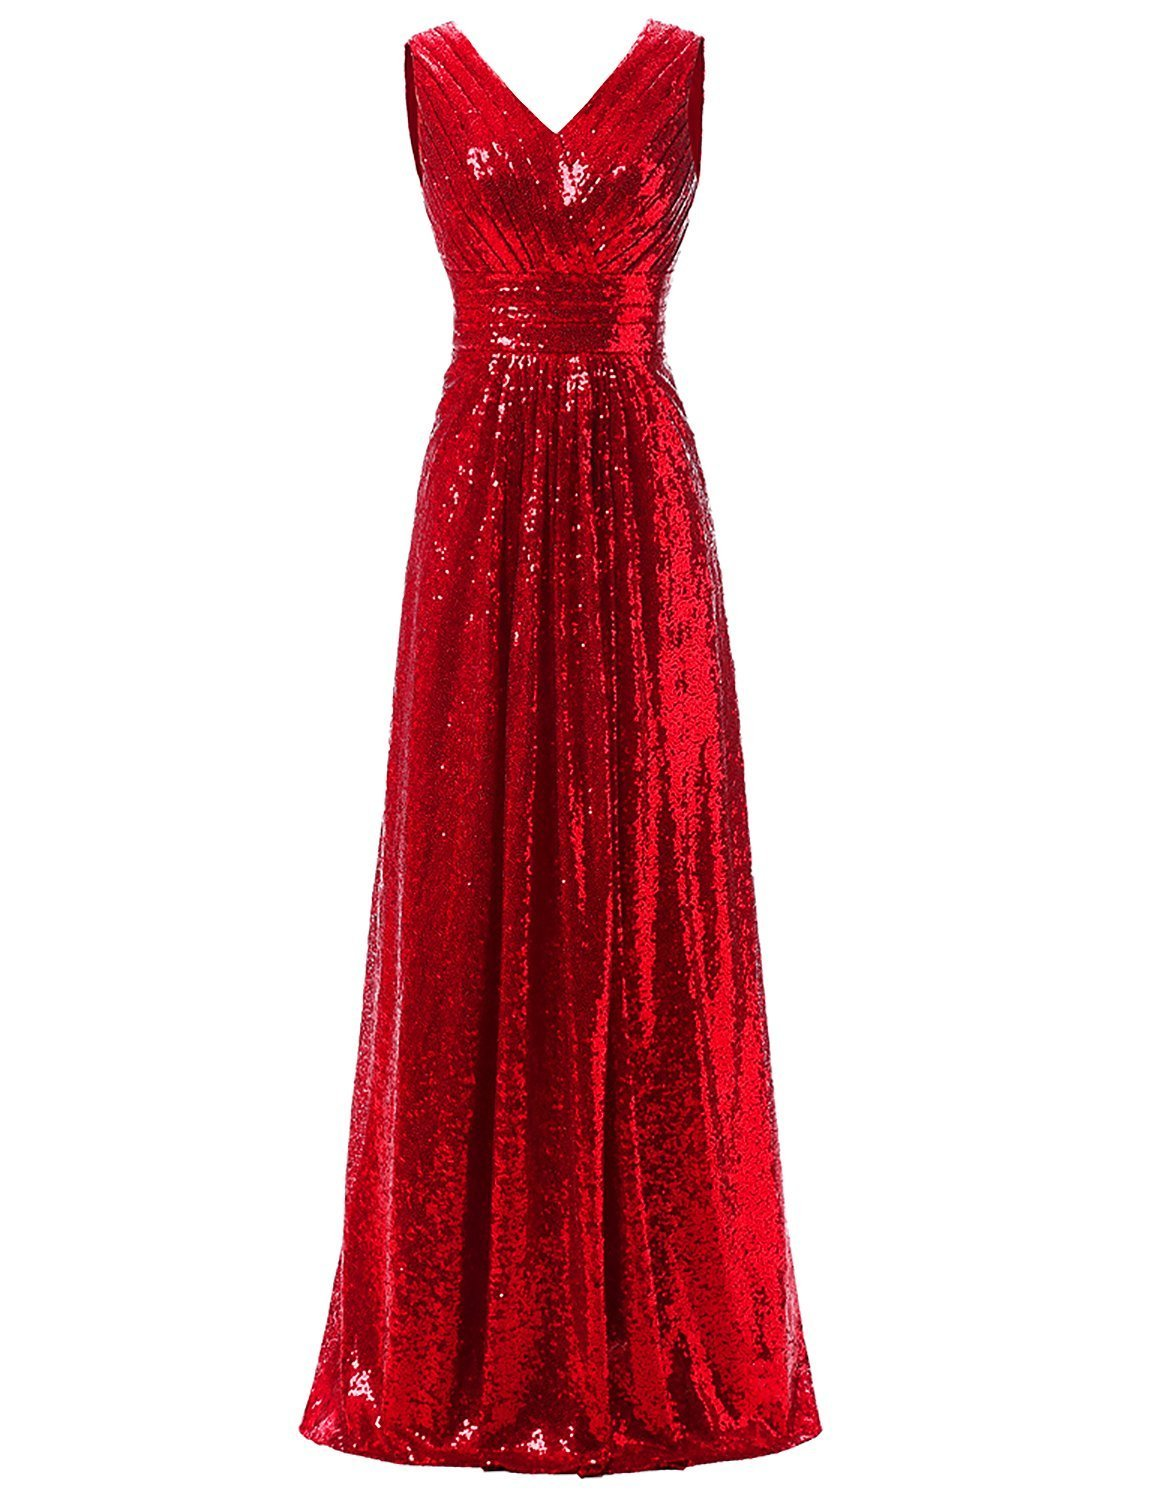 Women's Sequin Bridesmaid Dress Sleeveless Maxi Formal Gown Evening Prom Dresses